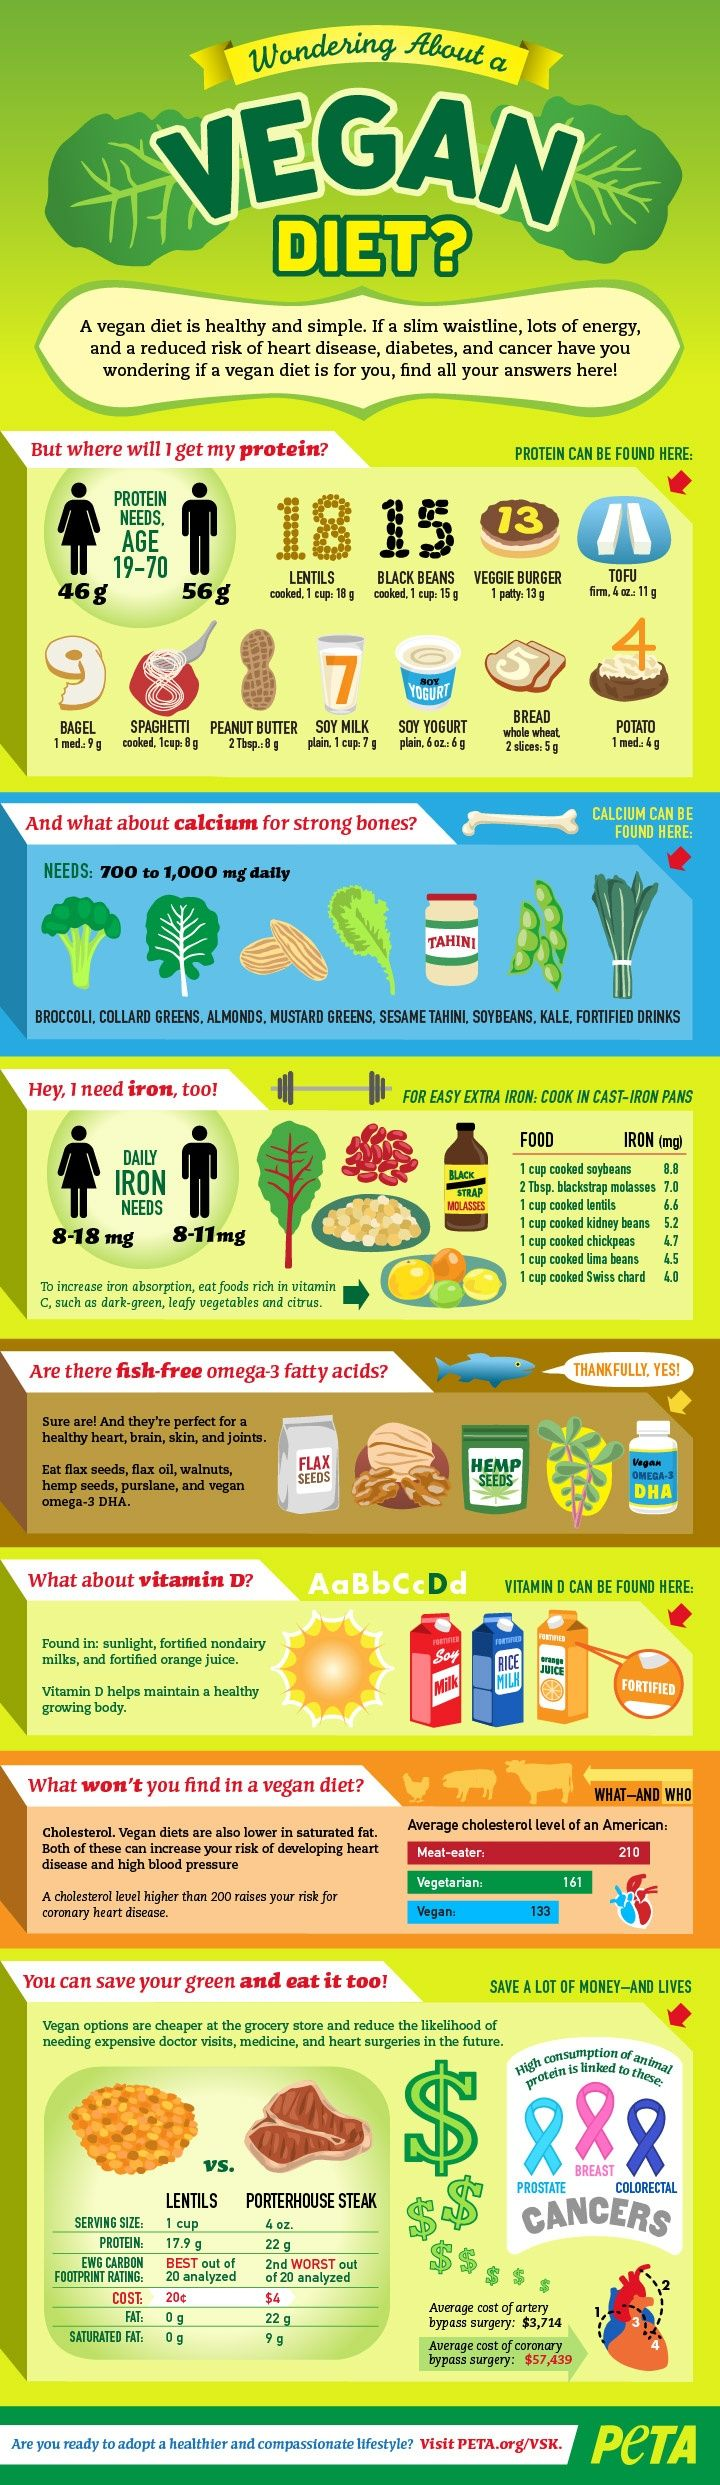 A vegan diet is not so lacking as many believe. One need not worry about protein or calcium. My biggest recommendation for any long term vegan would be, research and invest in a high quality B vite supplement. They tend to be difficult for the body to break down and a deficiency in B 12 is a serious health risk. Be balanced and safe and enjoy the wonderful food the earth around us offers!!!